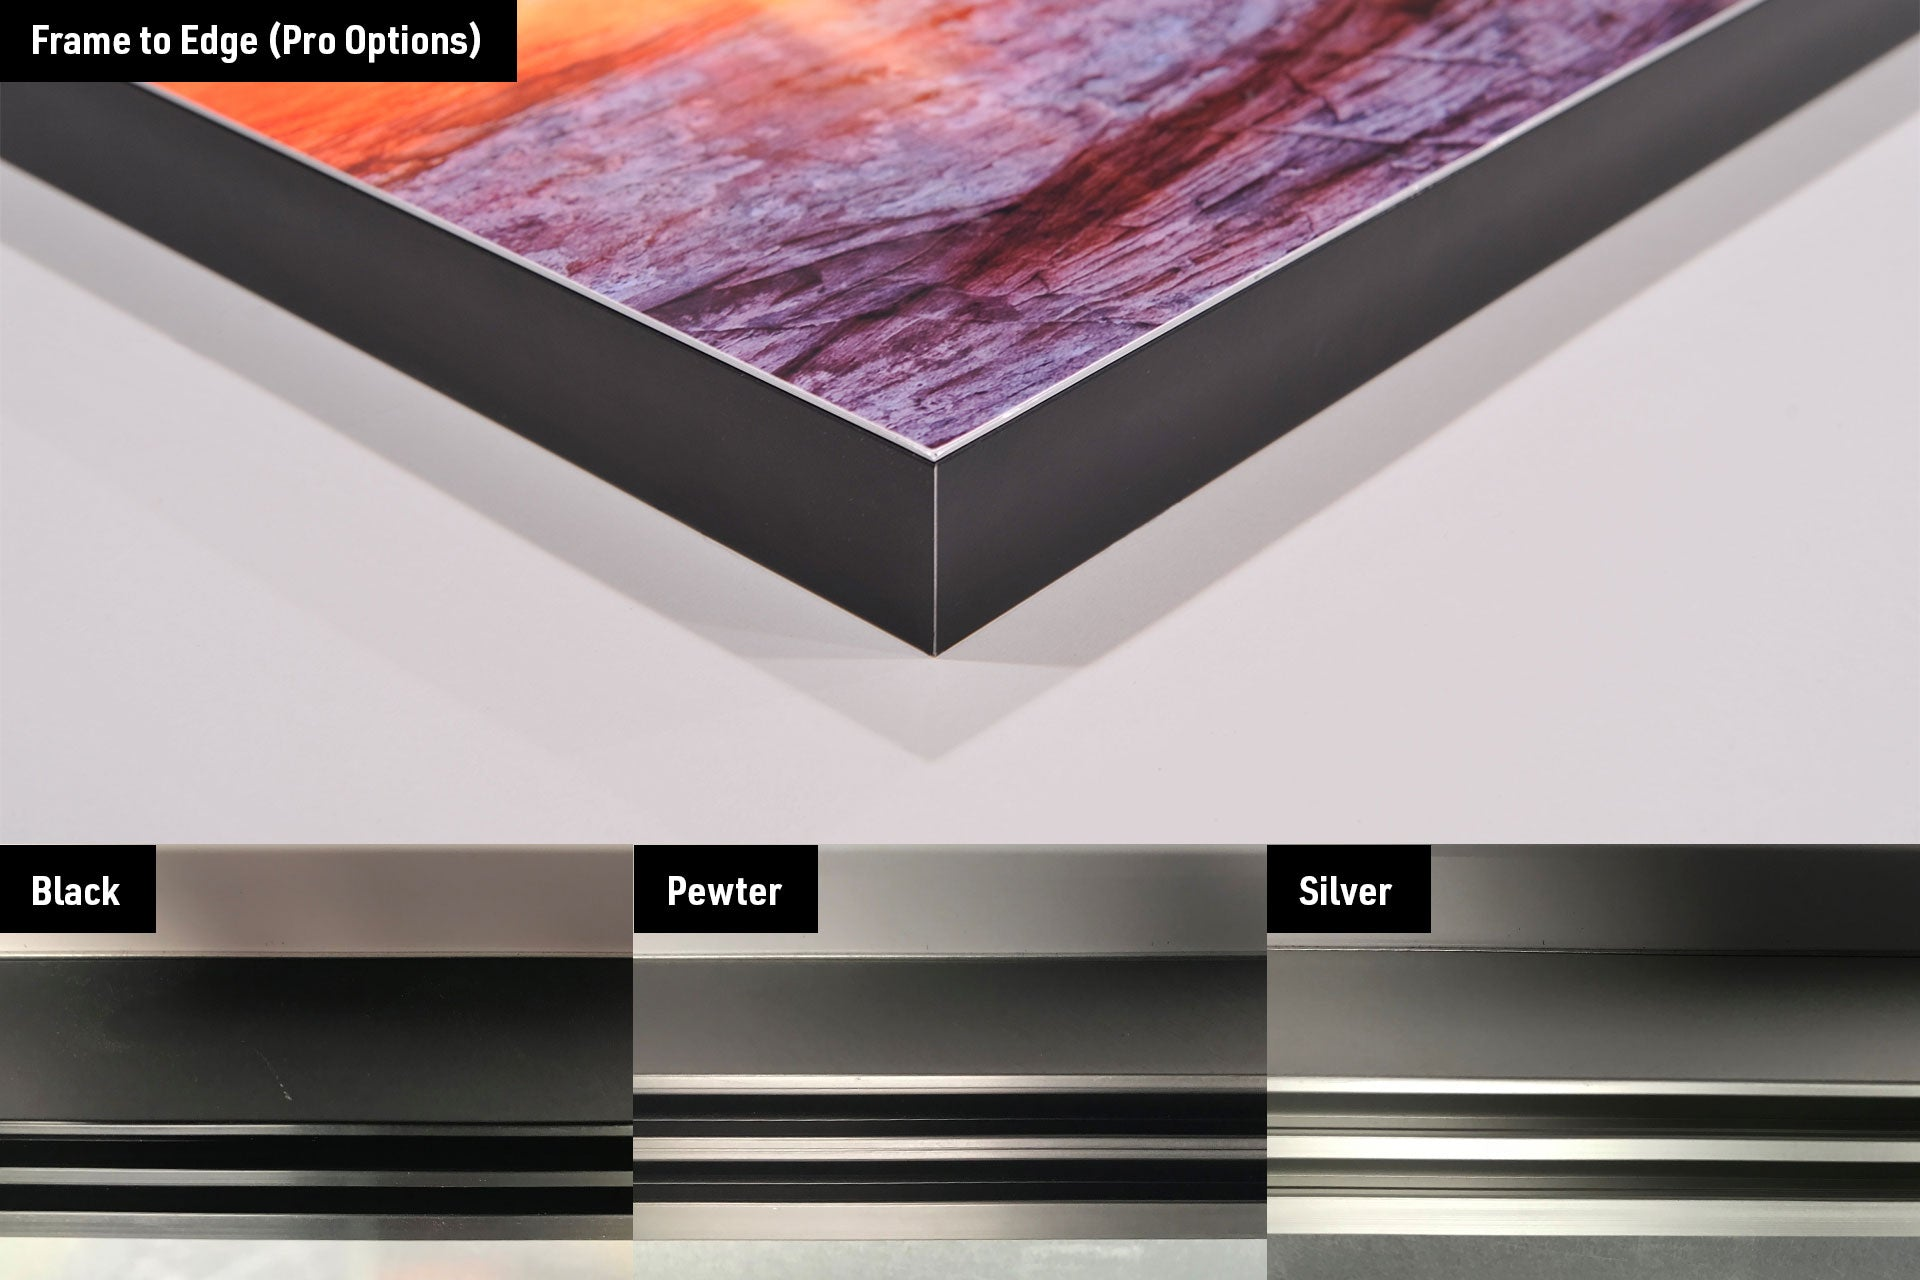 Side by side images of frame to edge color options